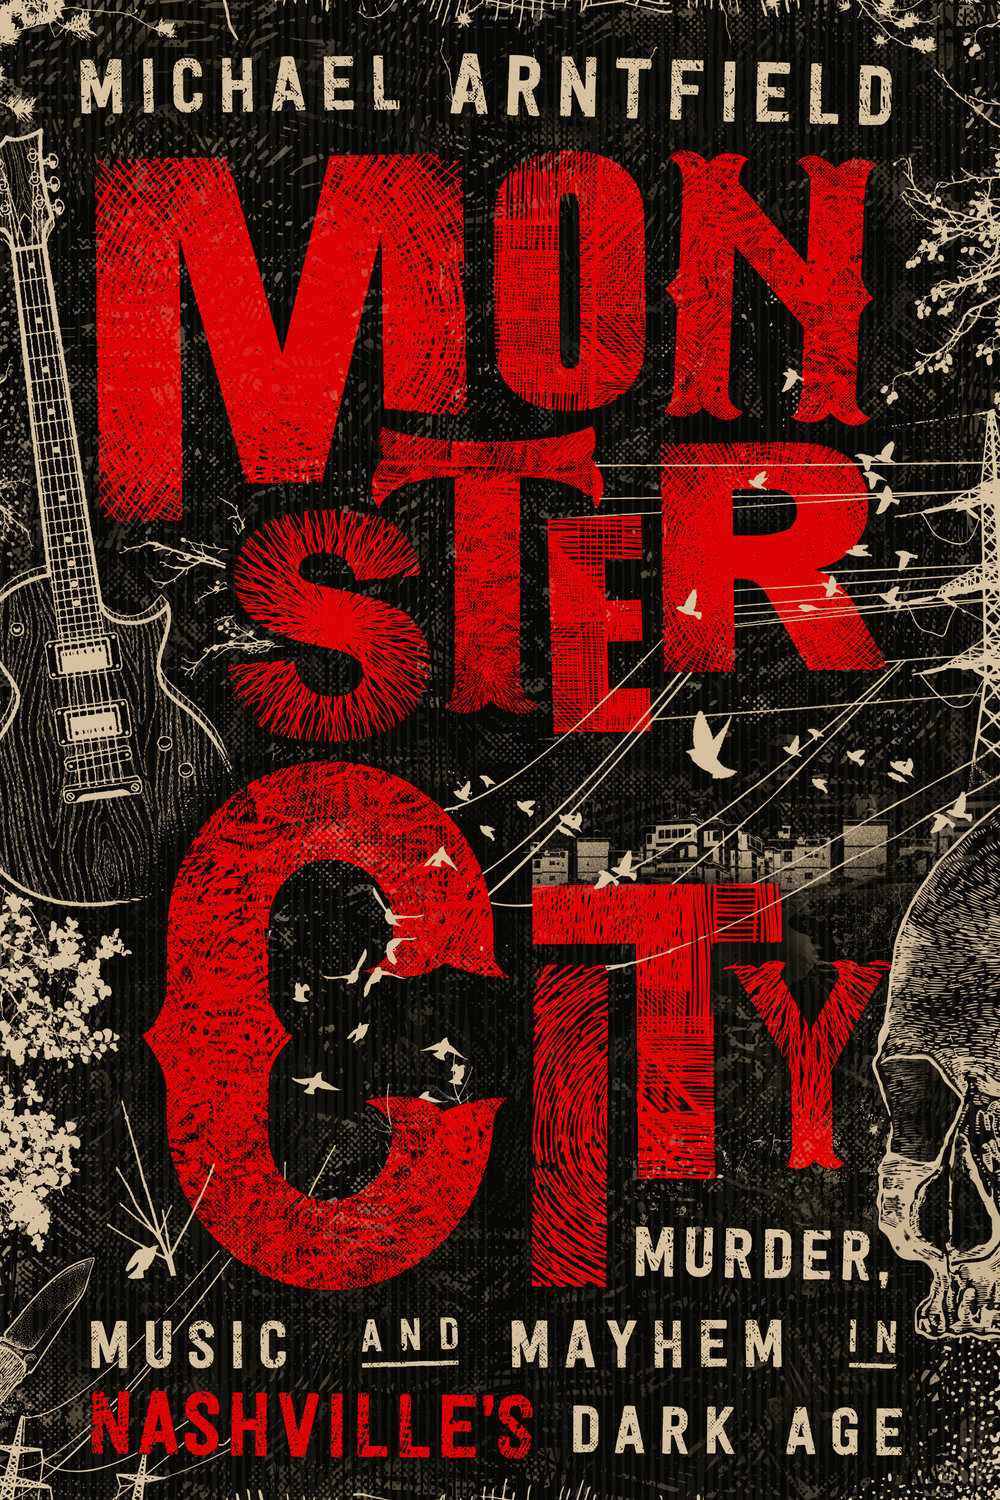 Arntfield-Monster City-24762-CV-FT-v4.jpg